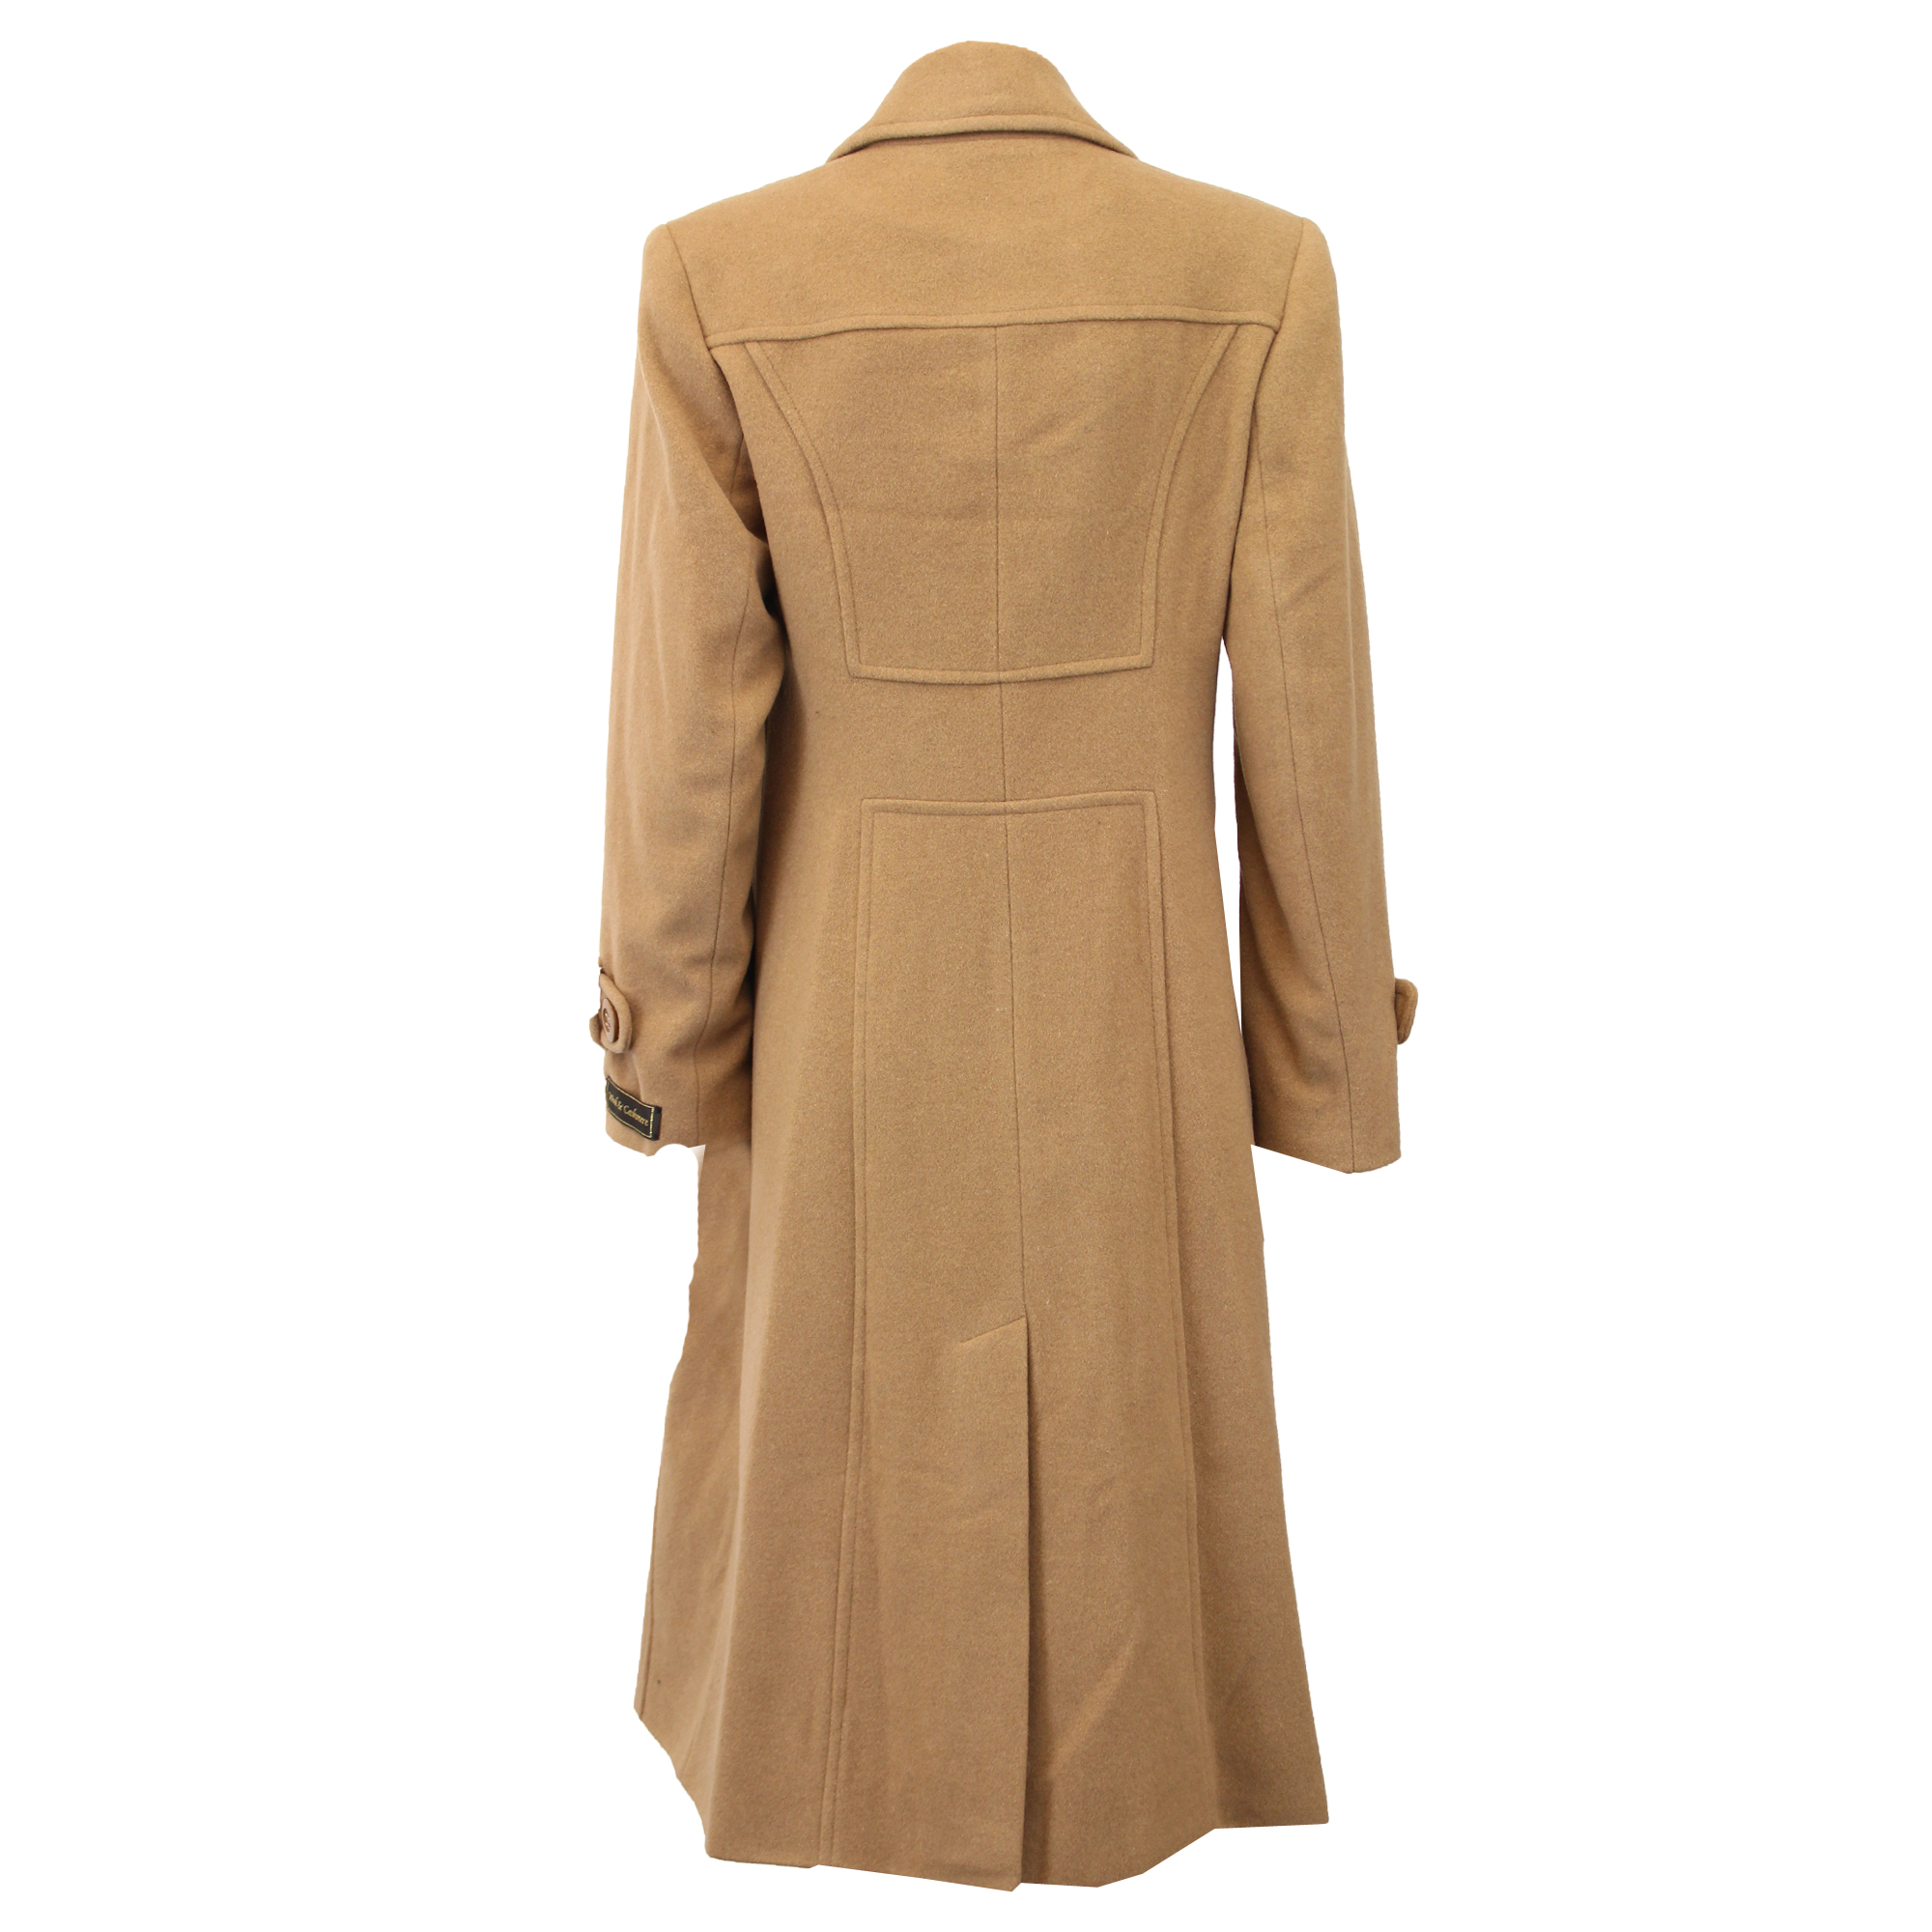 Ladies-Wool-Cashmere-Coat-Women-Jacket-Outerwear-Trench-Overcoat-Winter-Lined thumbnail 37